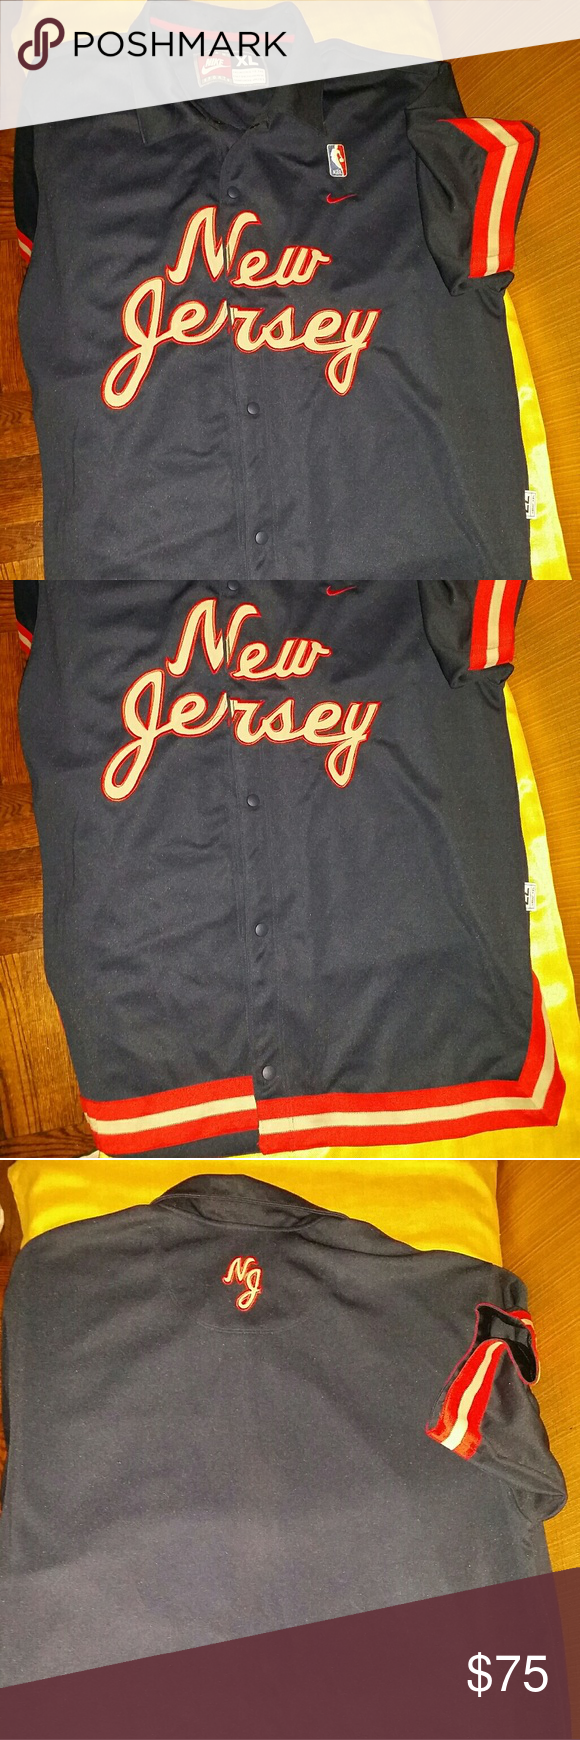 best service 2fa48 15a87 Vintage New jersey Nets warm up jacket Vintage New Jersey ...